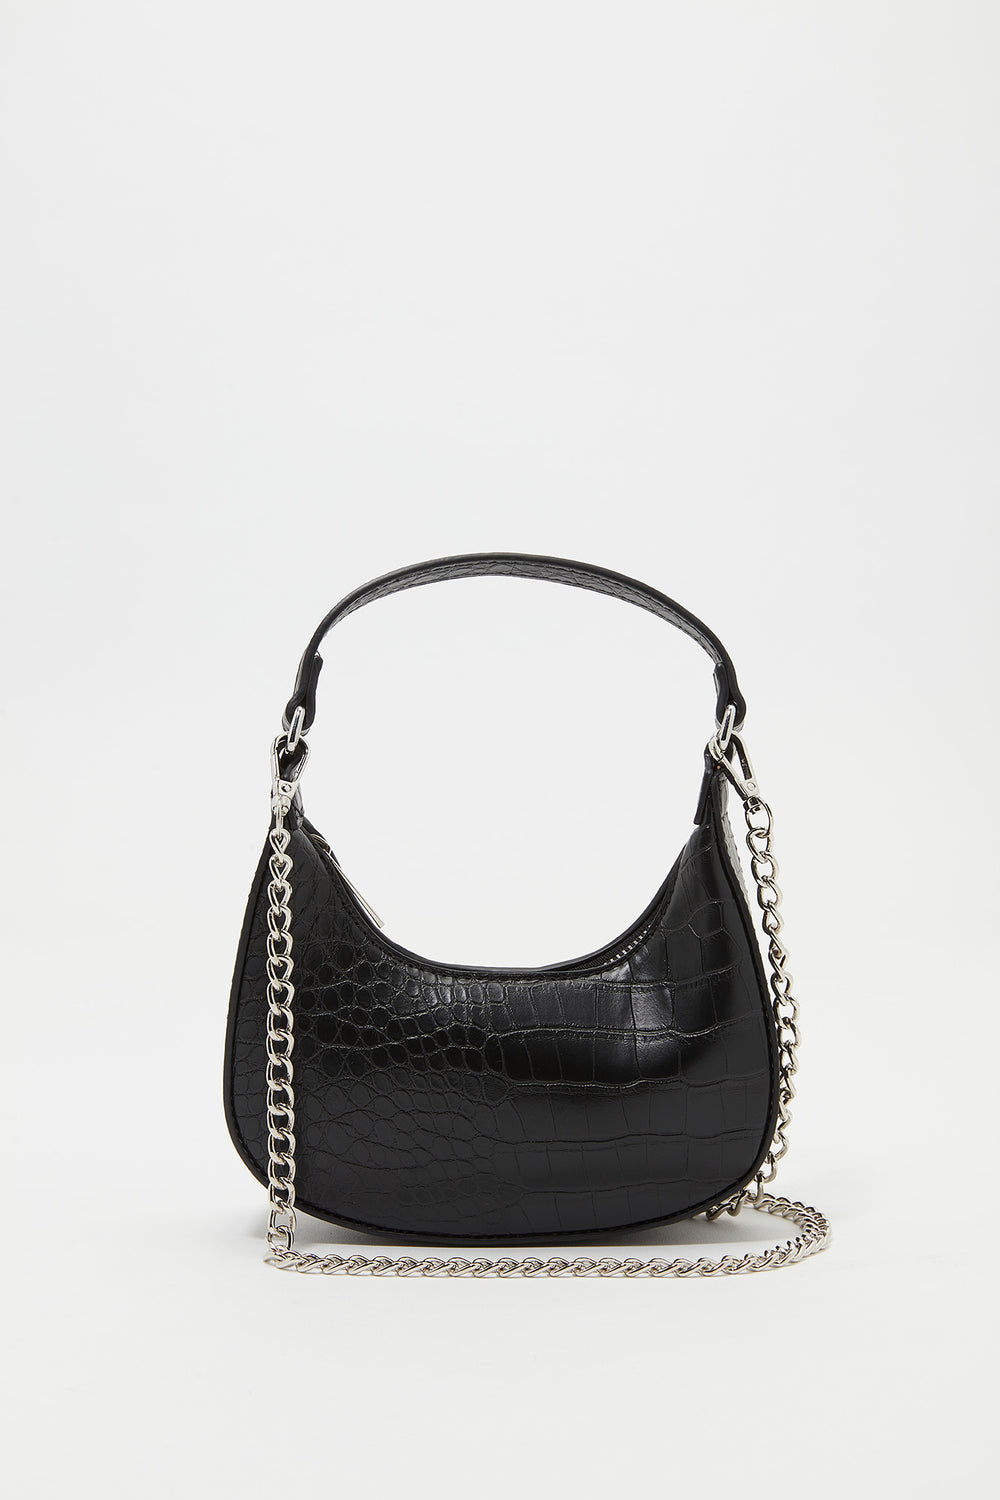 Mini Chain Strap Shoulder Bag Black